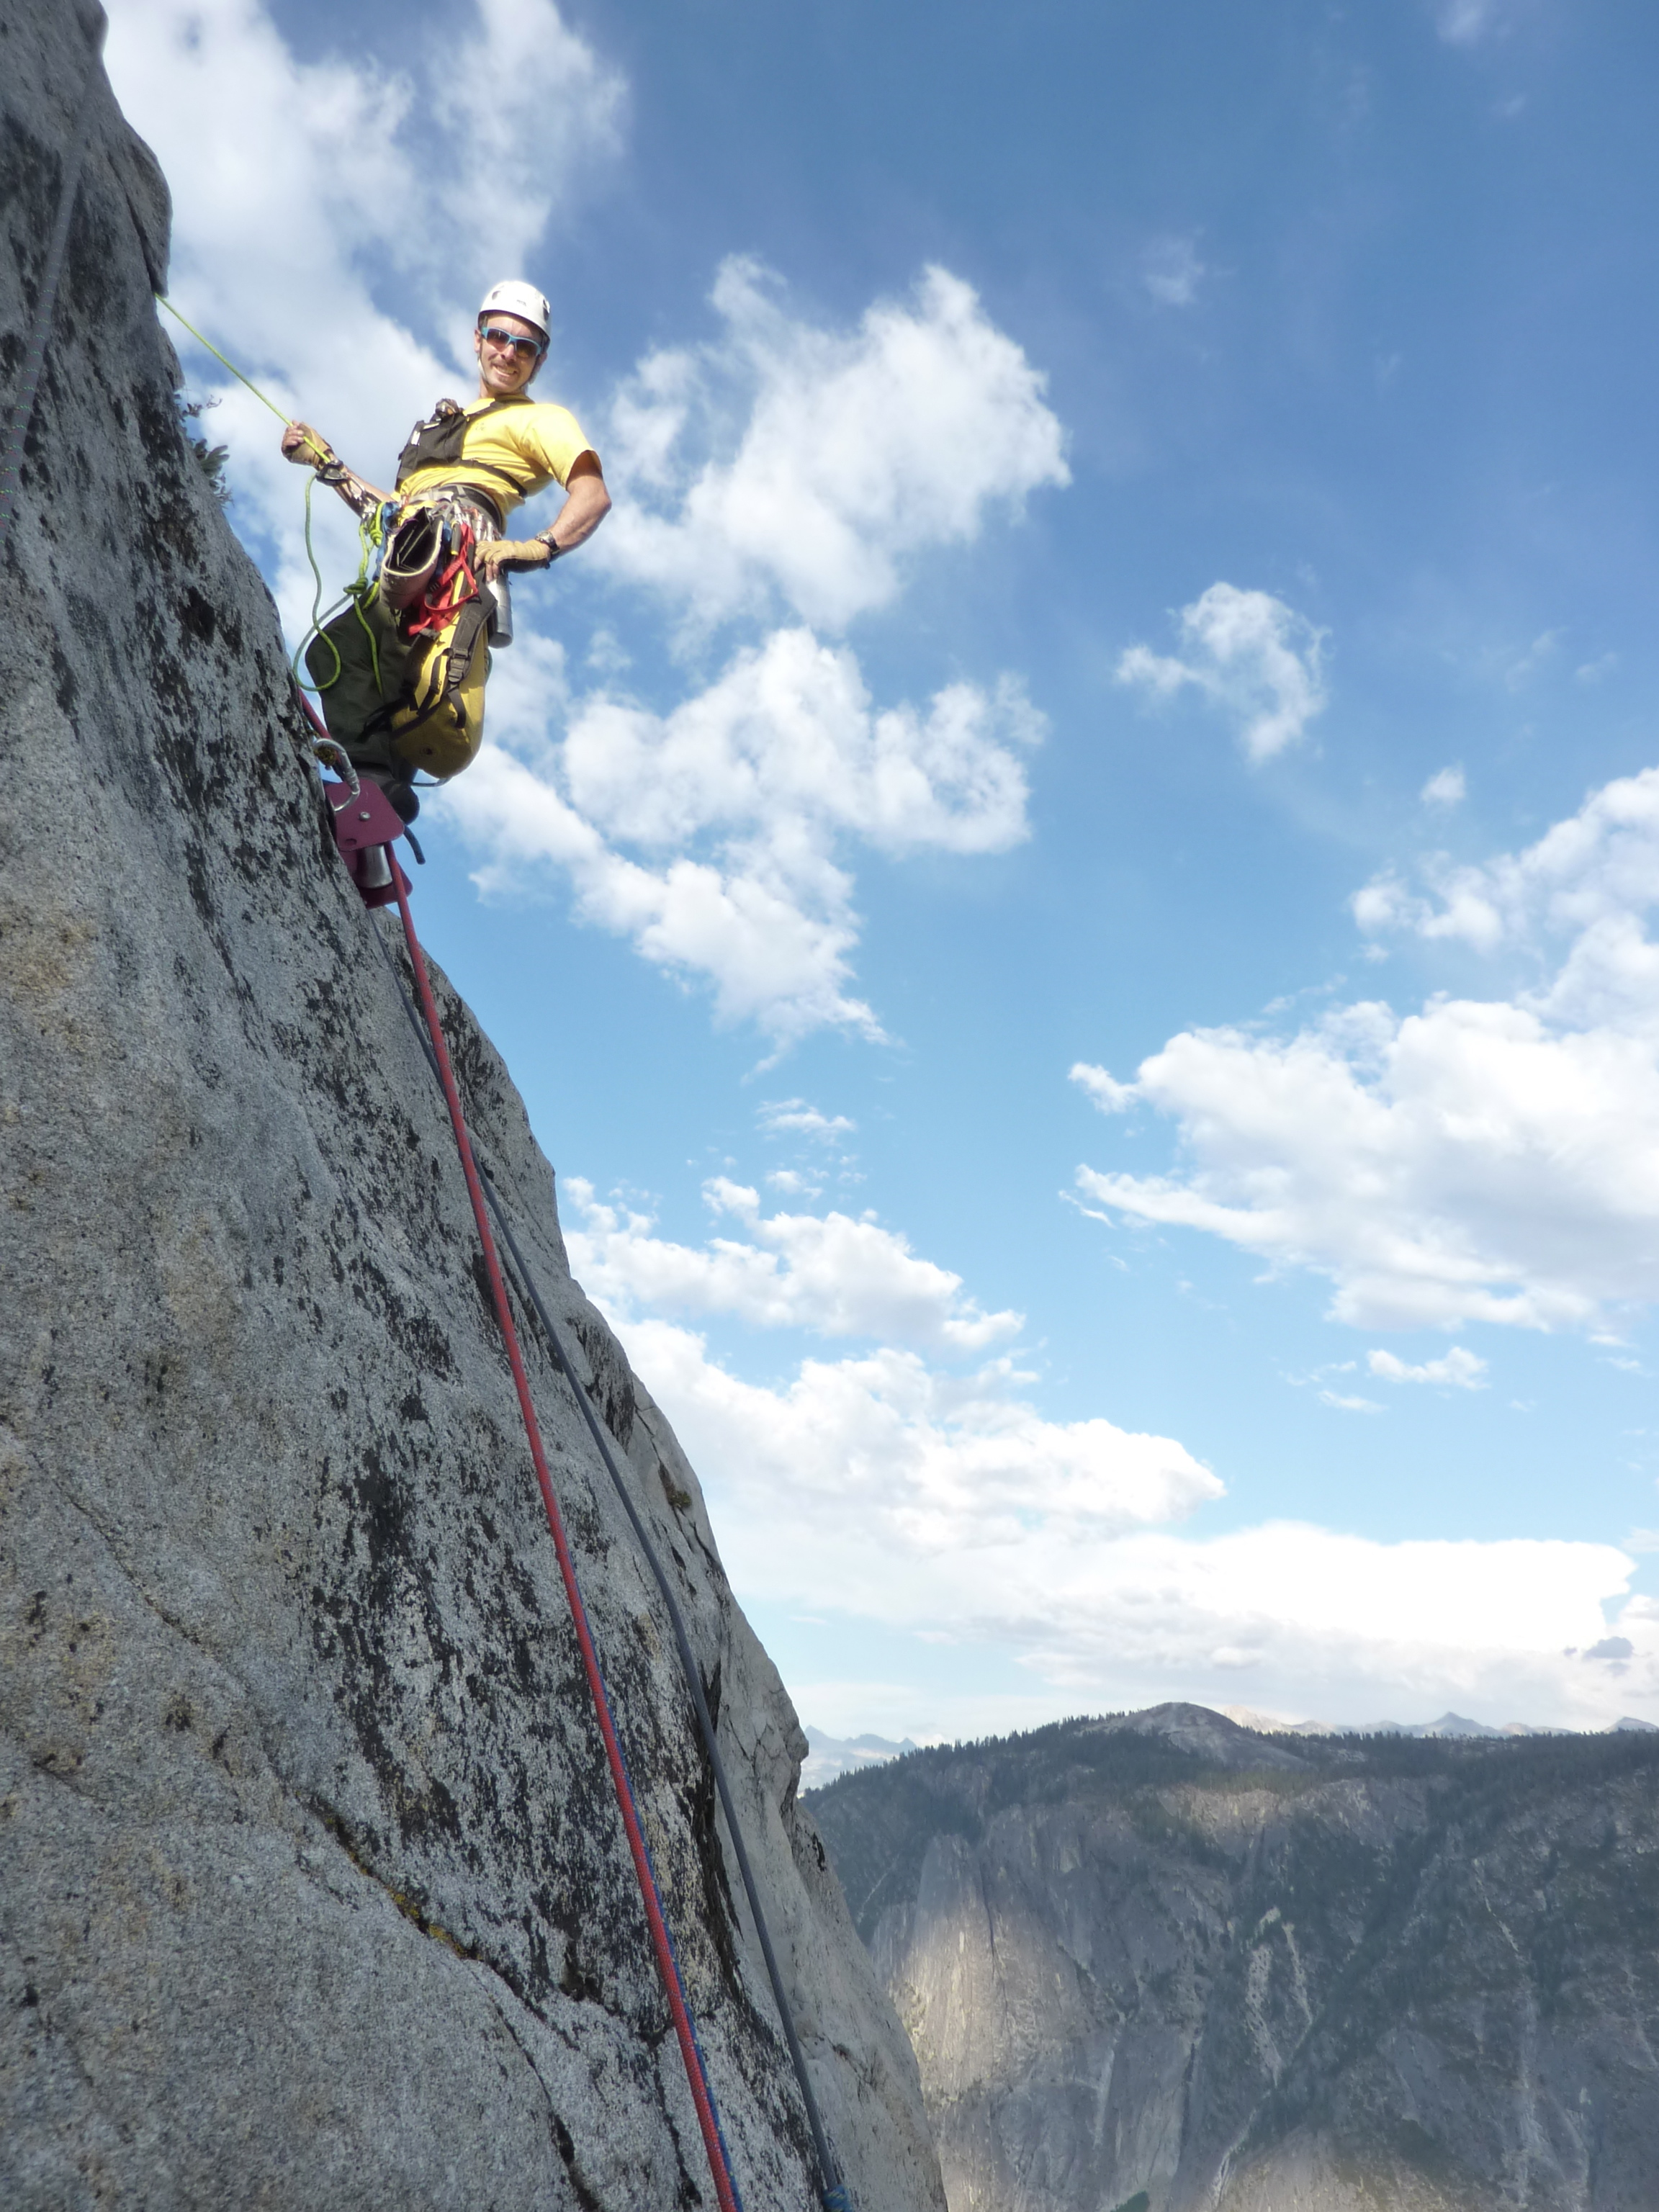 Search and Rescue employee rappelling down El Cap during a rescue.